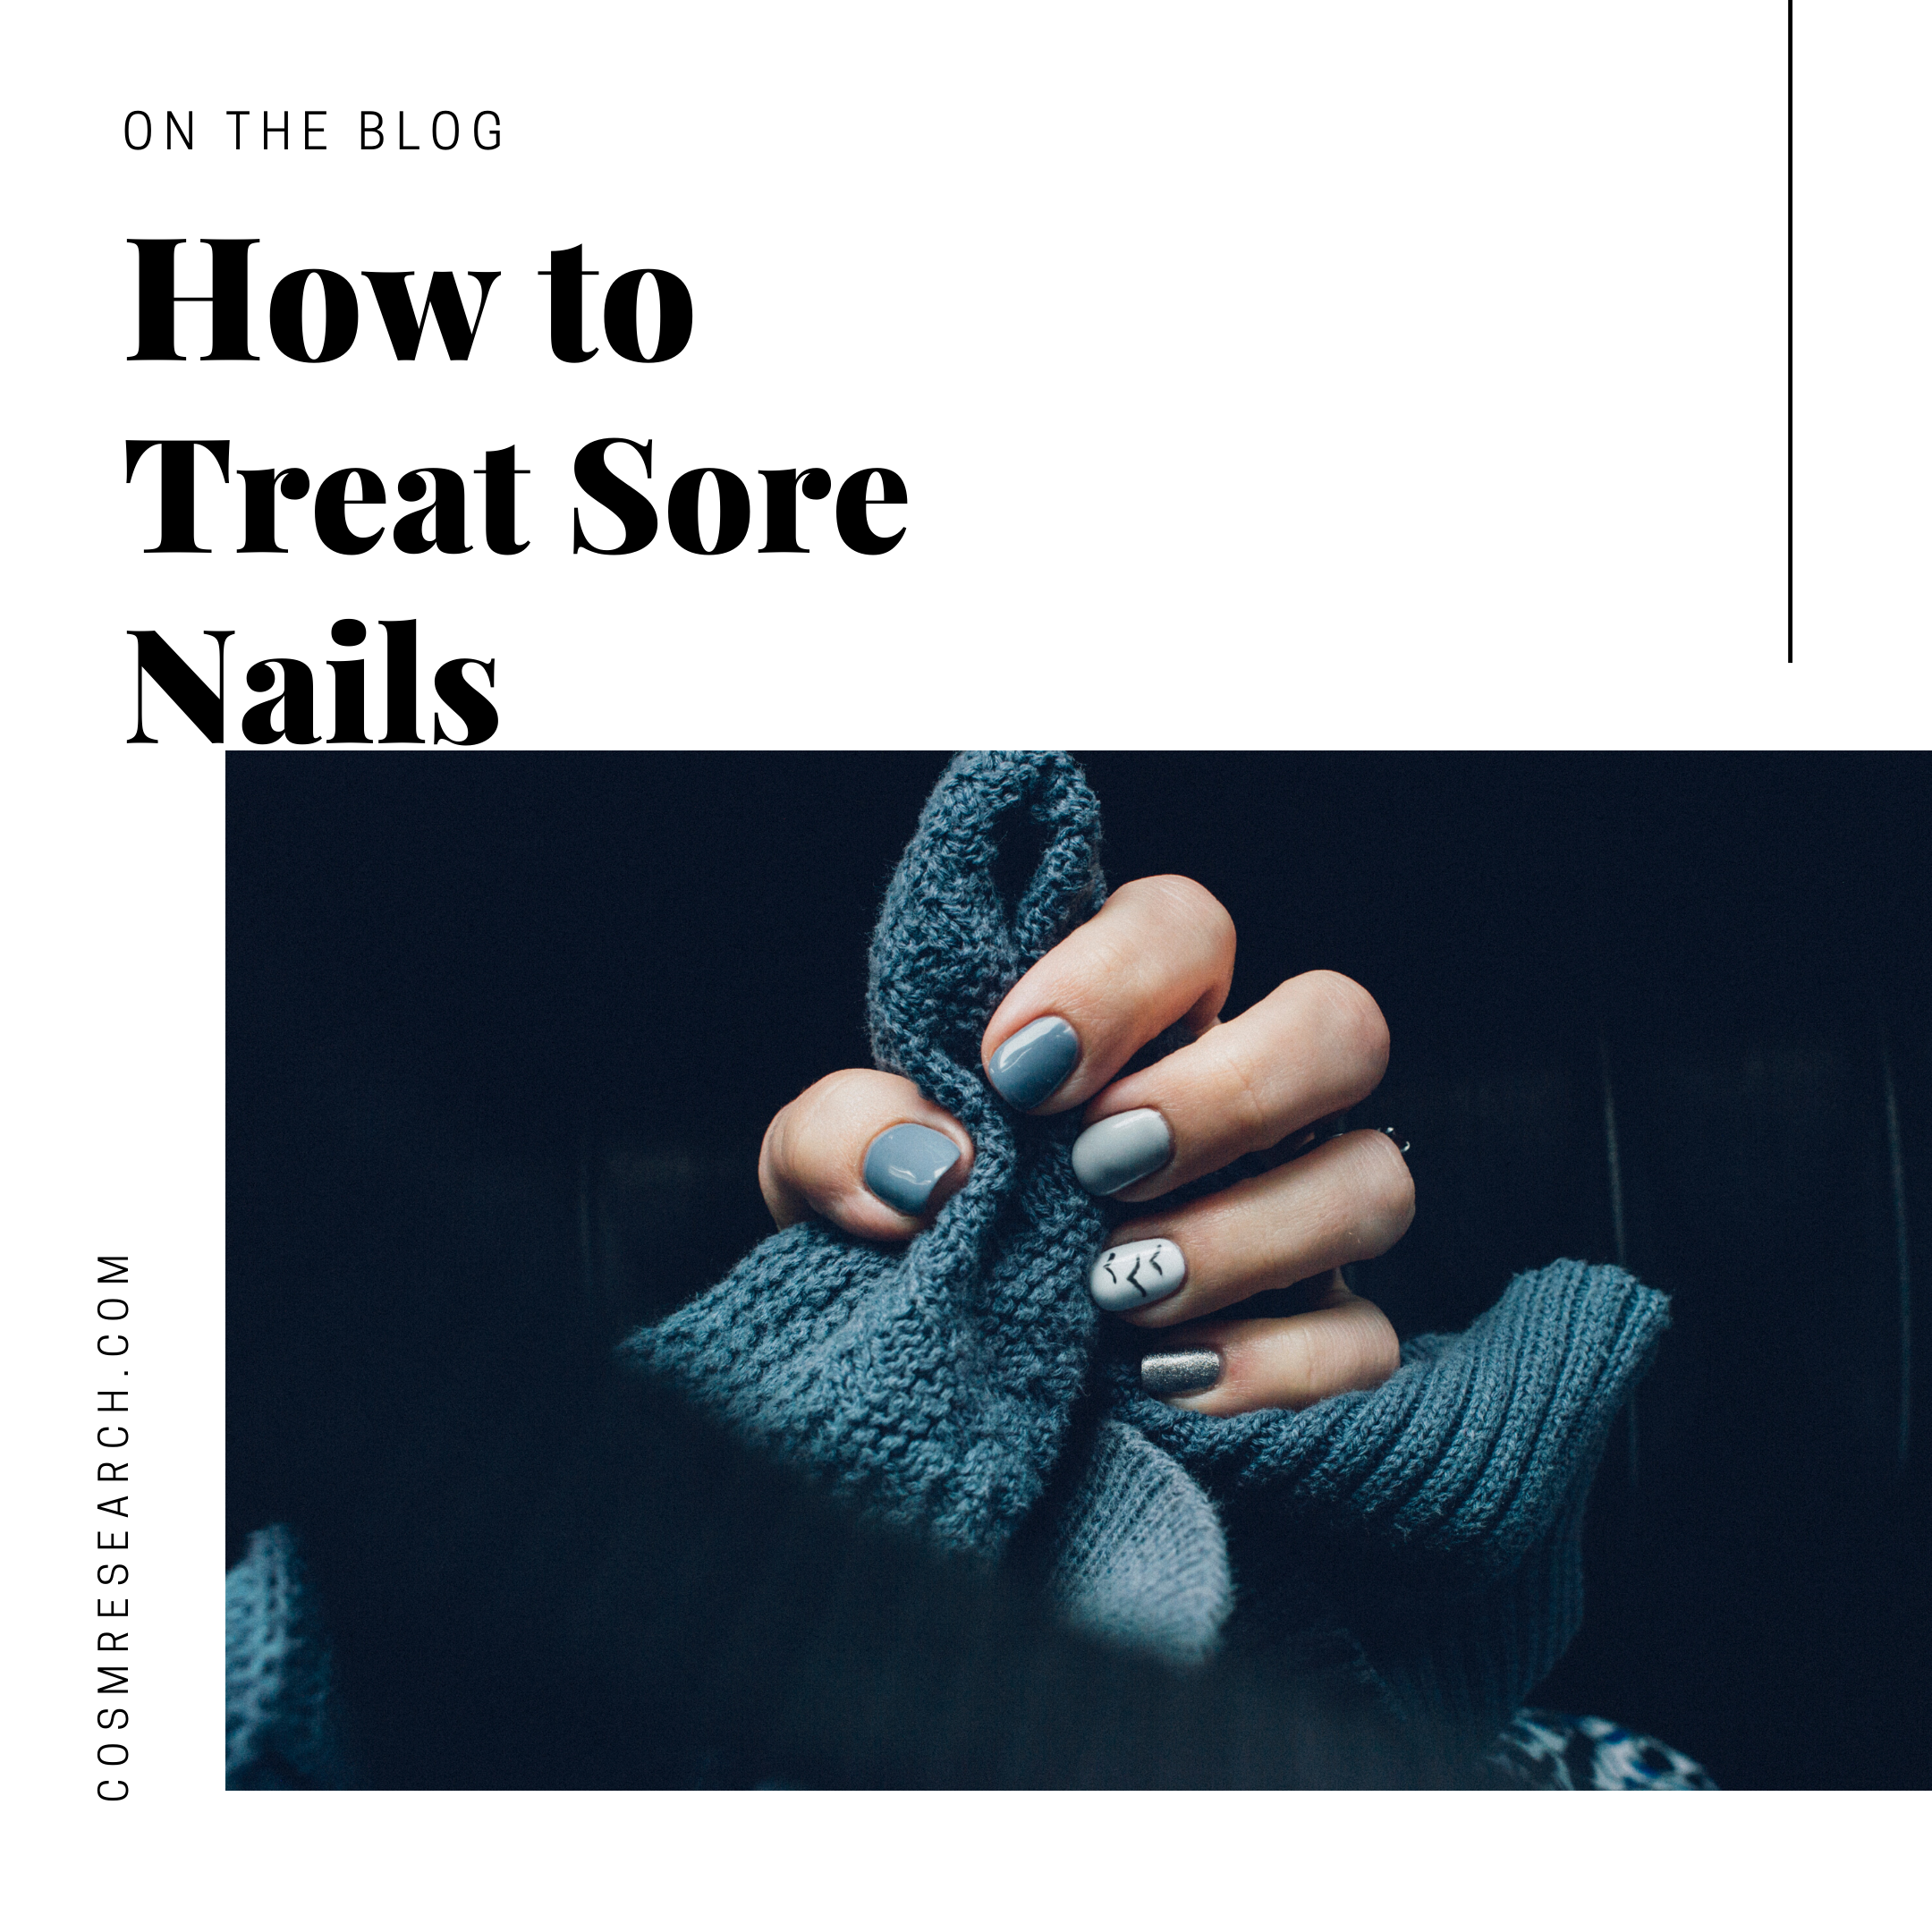 #beautyroutine #beautyblogger #cosmresearch #nails